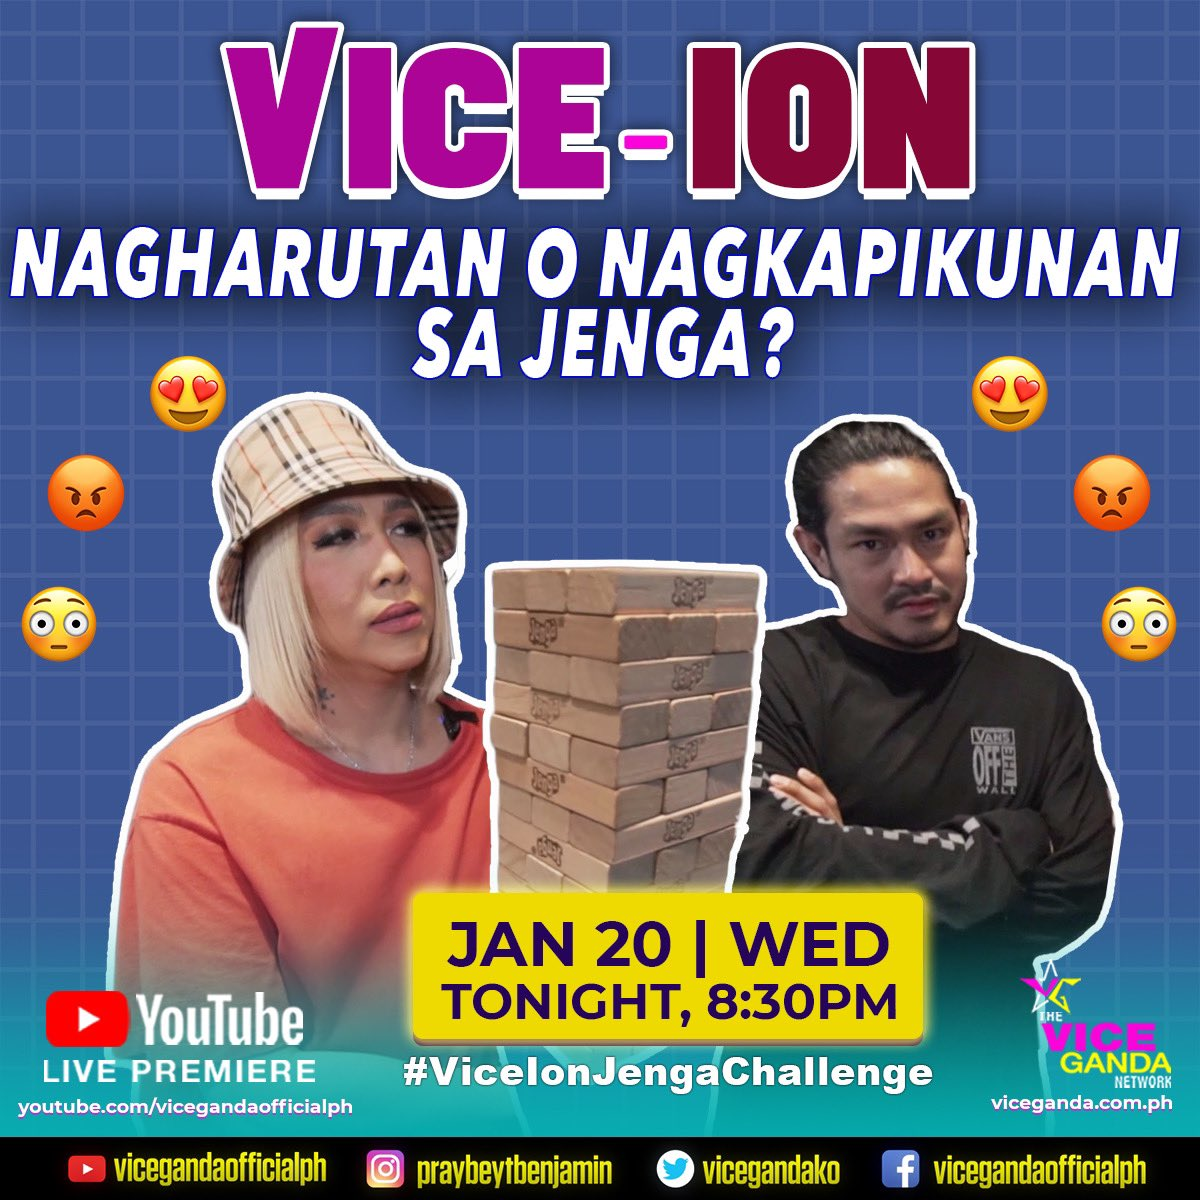 LARO-LARO LANG NG JENGA, WALANG PIKUNAN! New vlog chunyt at 8:30PM sa Vice Ganda Youtube Channel! #ViceIonJengaChallenge